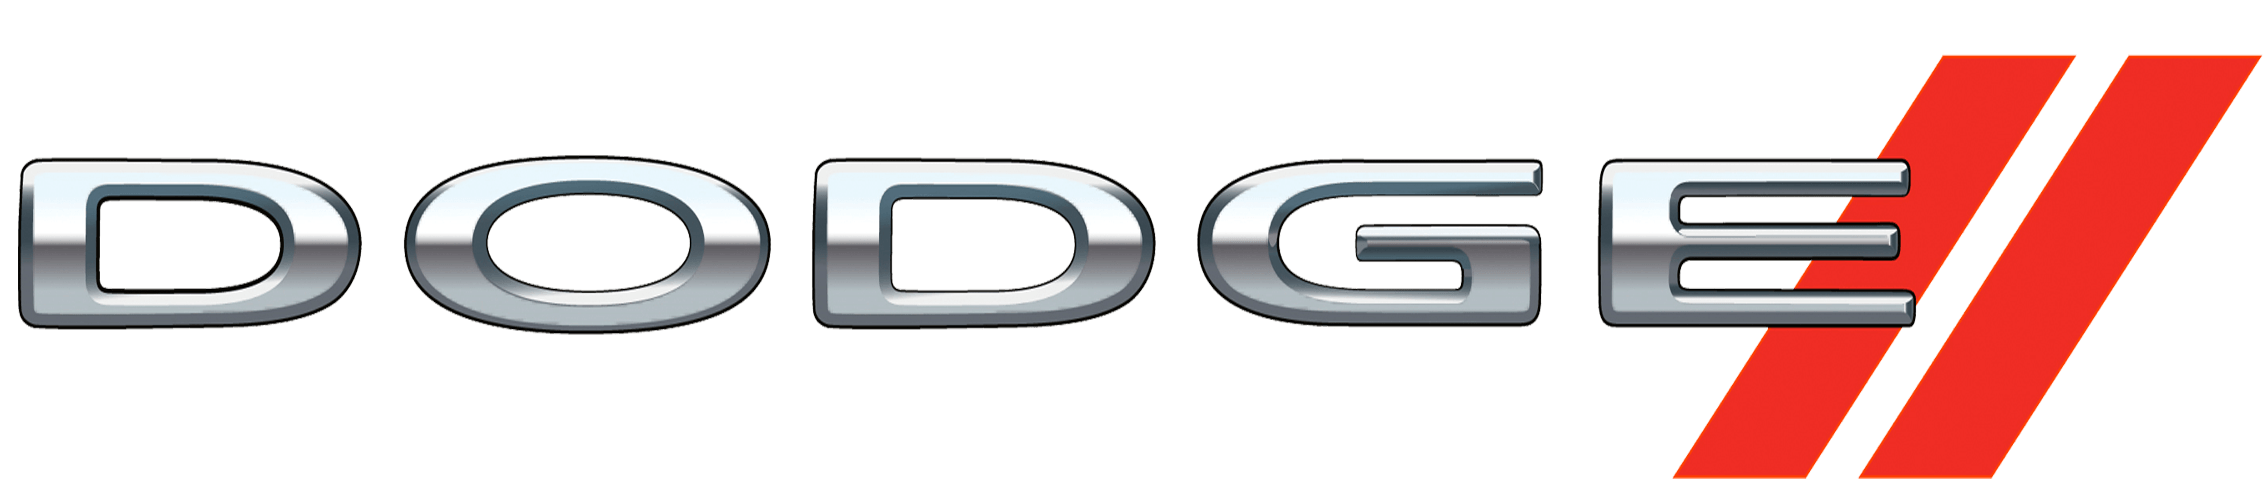 Dodge Logo - Dodge Logo Meaning and History, latest models | World Cars Brands